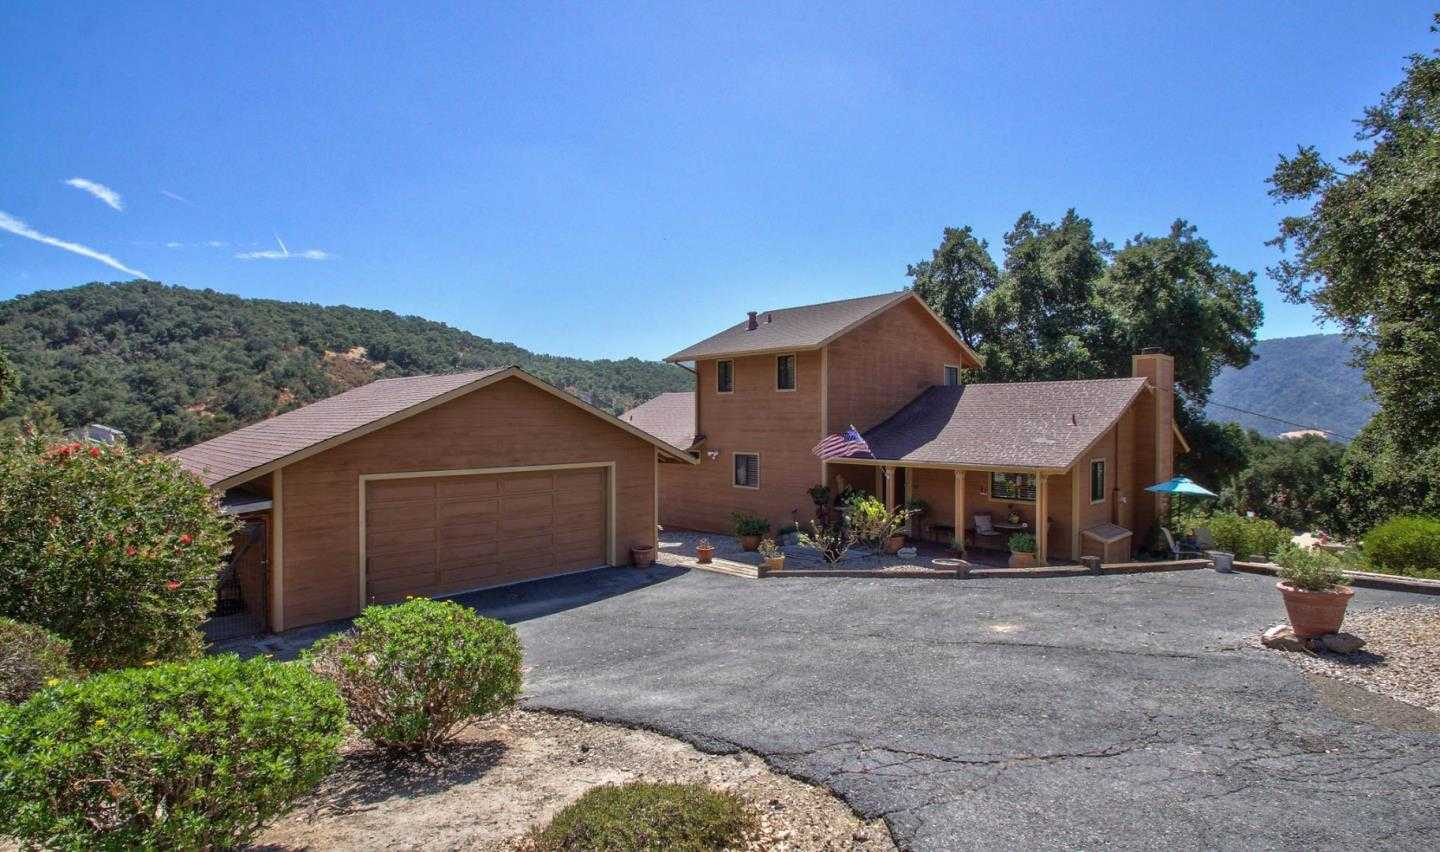 $699,000 - 3Br/3Ba -  for Sale in Carmel Valley